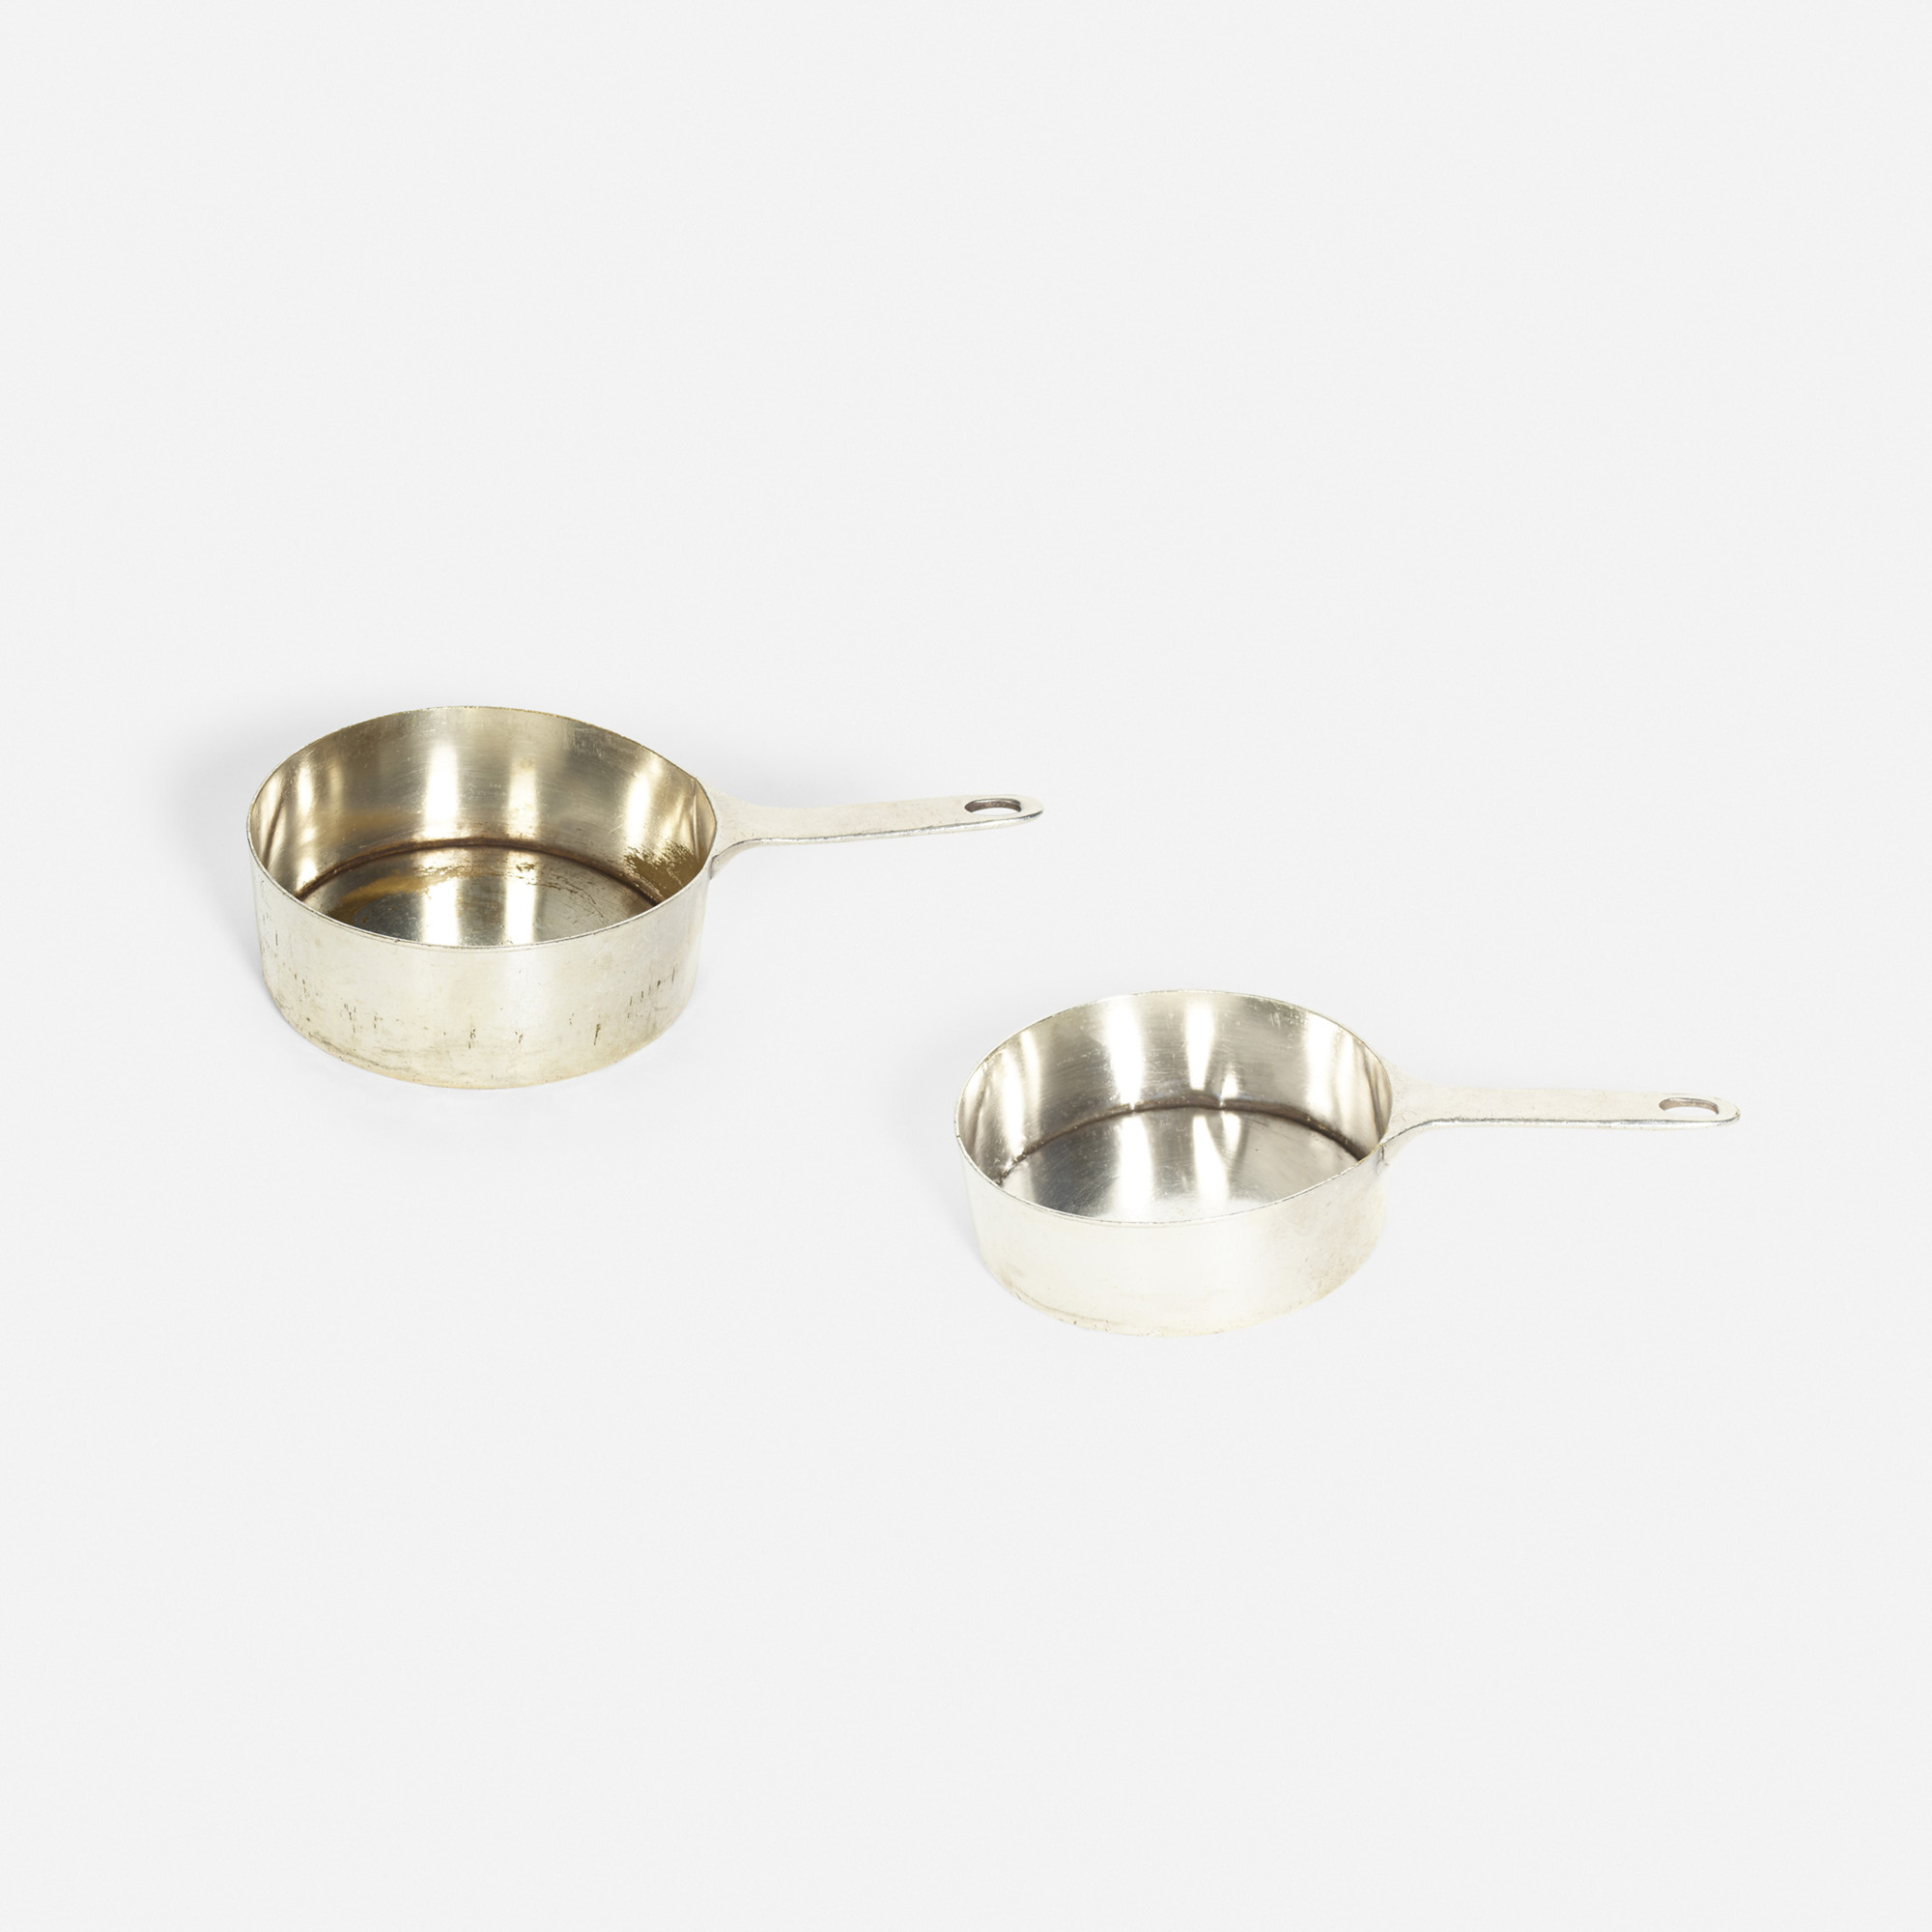 867: Garth and Ada Louise Huxtable / sauce pots from the kitchen of The Four Seasons, set of two (1 of 1)